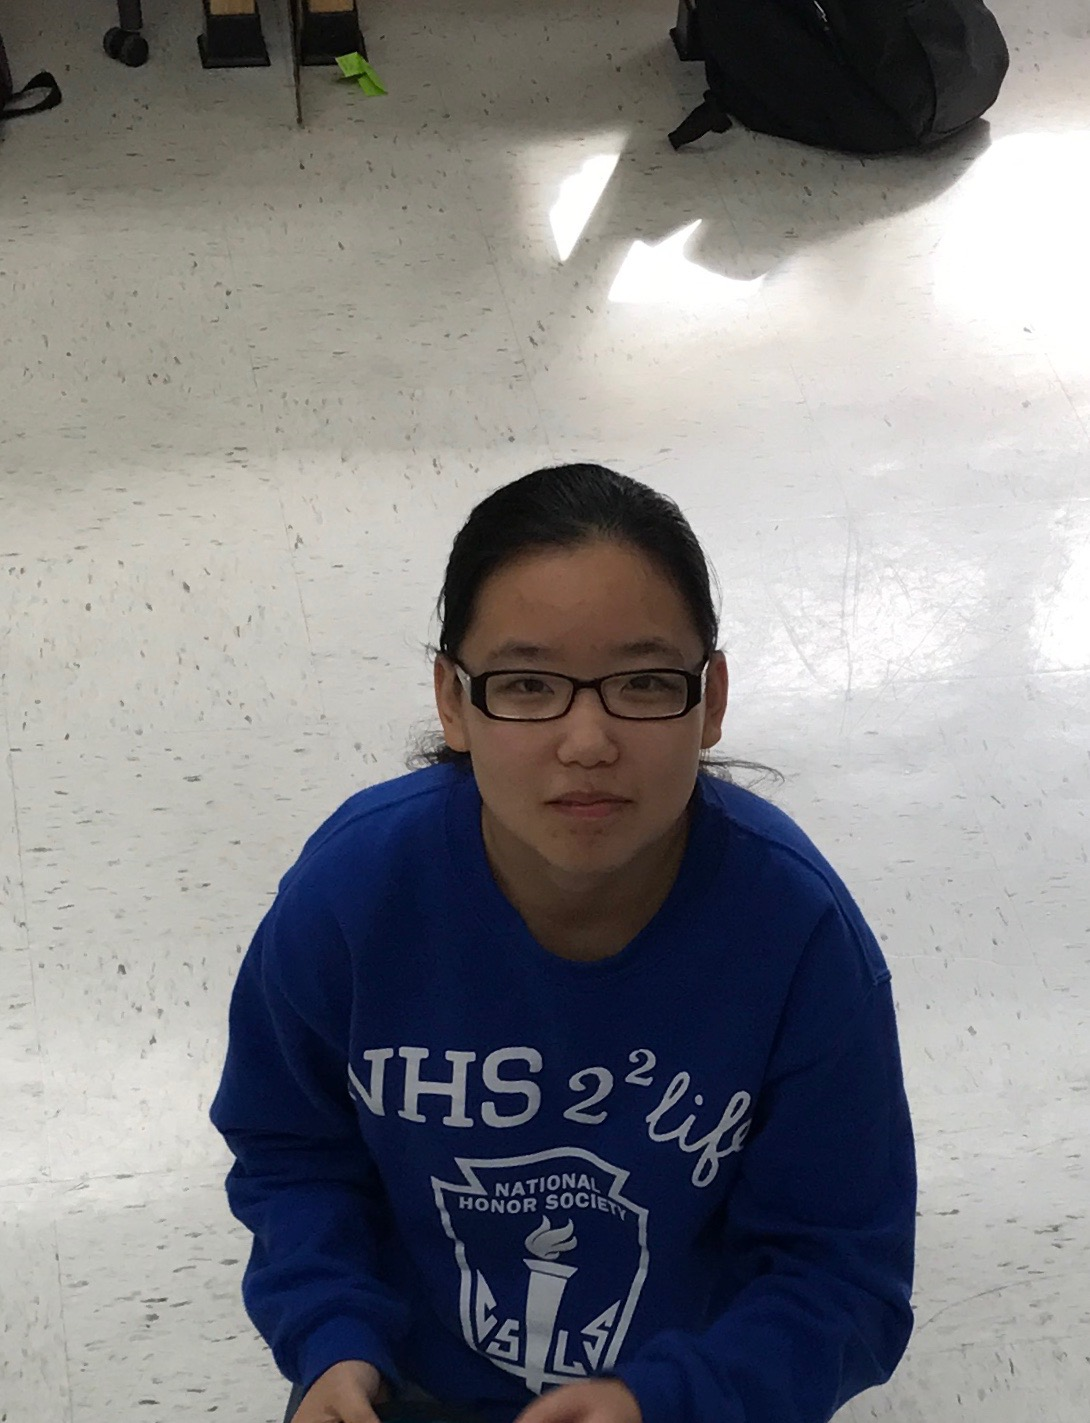 Name : Yuan Gao   Graduation year:  2021   Major:  Computer Science/Computational Biology   Interests : Reading, instruments (piano, guitar, bagpipe-learning), cooking   Fun facts : I'm ok with spiders and other bugs, but I'm terrified of frogs.